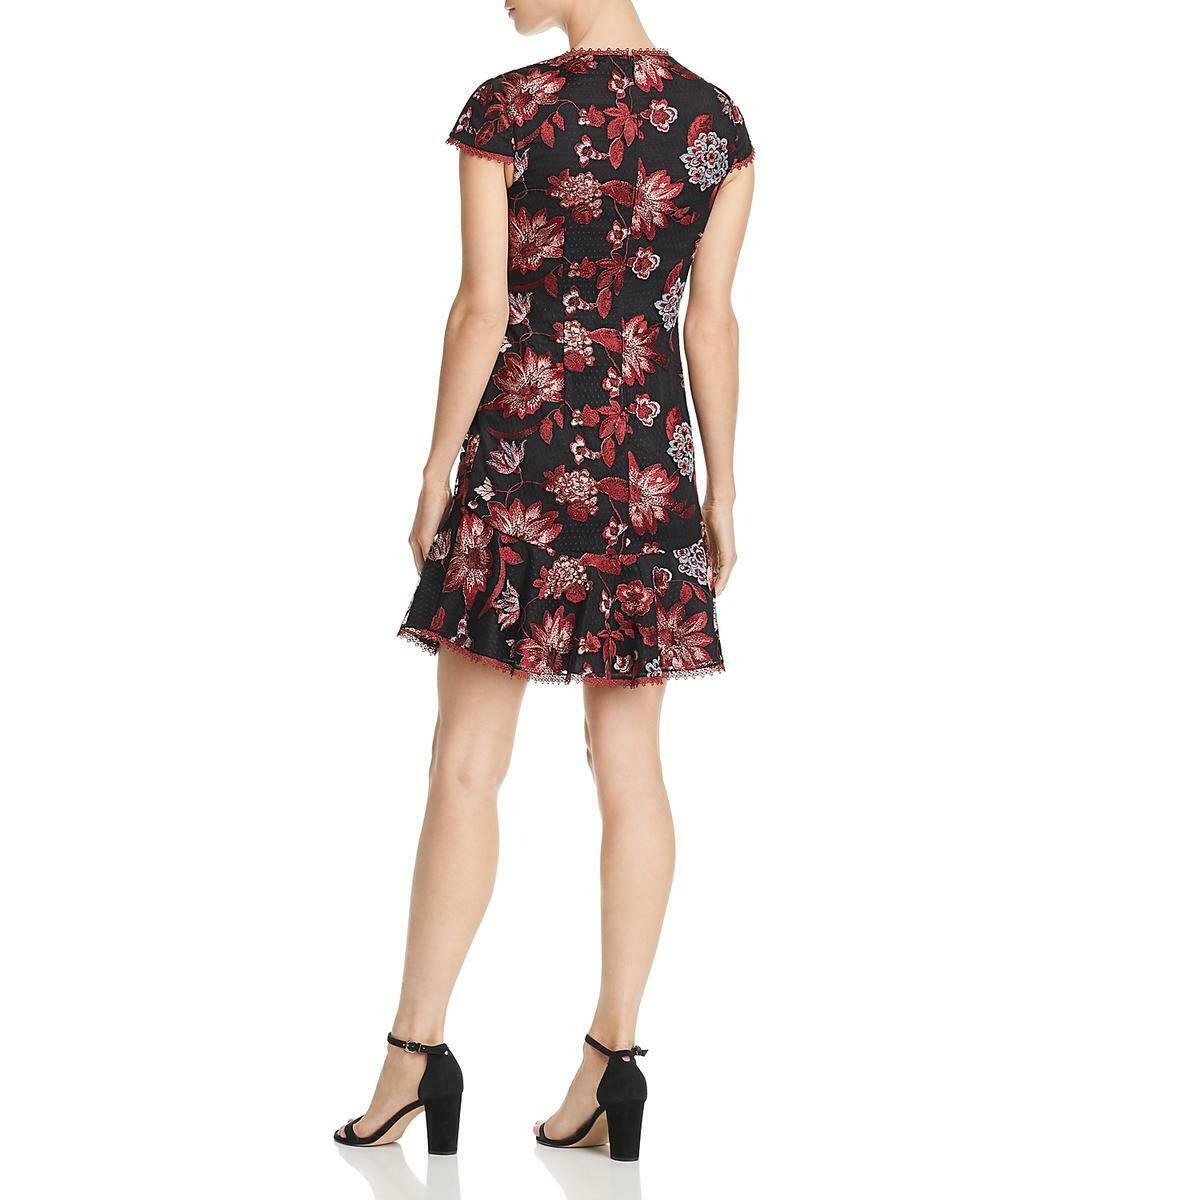 Aidan Mattox - MN1E202938 Floral Bodice Cap Sleeves Short Dress In Red and Black